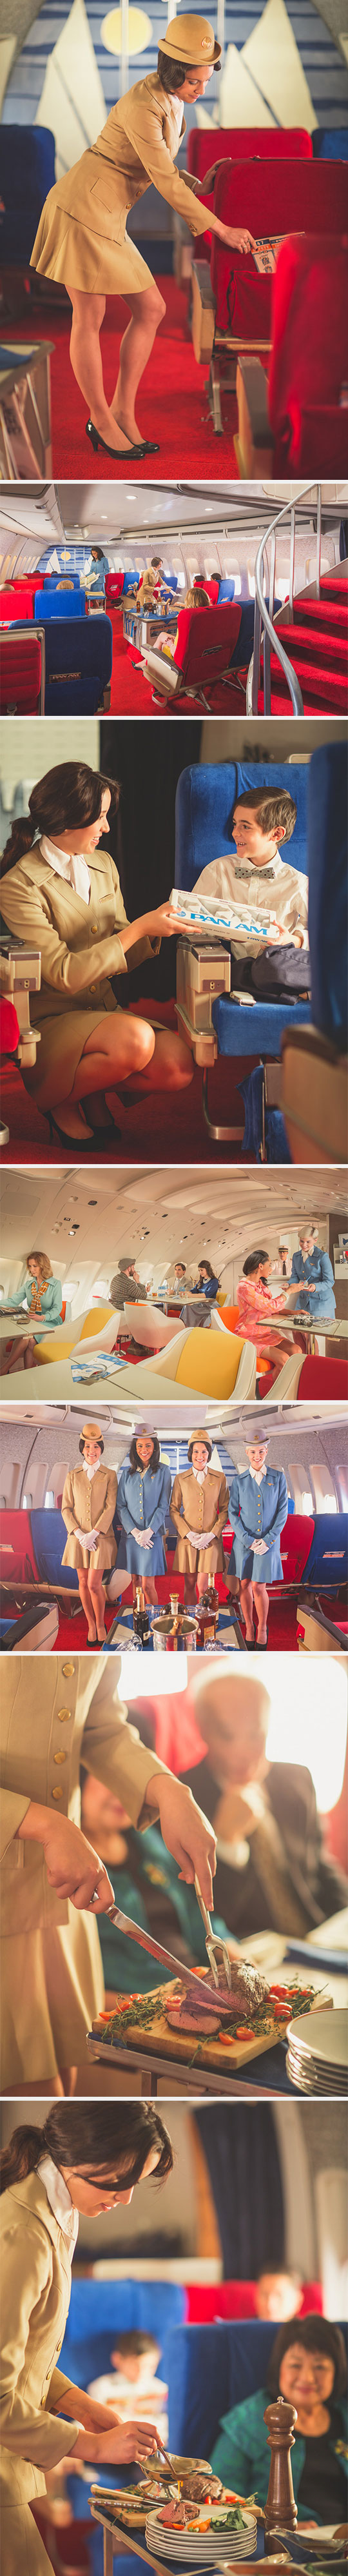 The Pan Am Experience Invites You To Step Back In Time